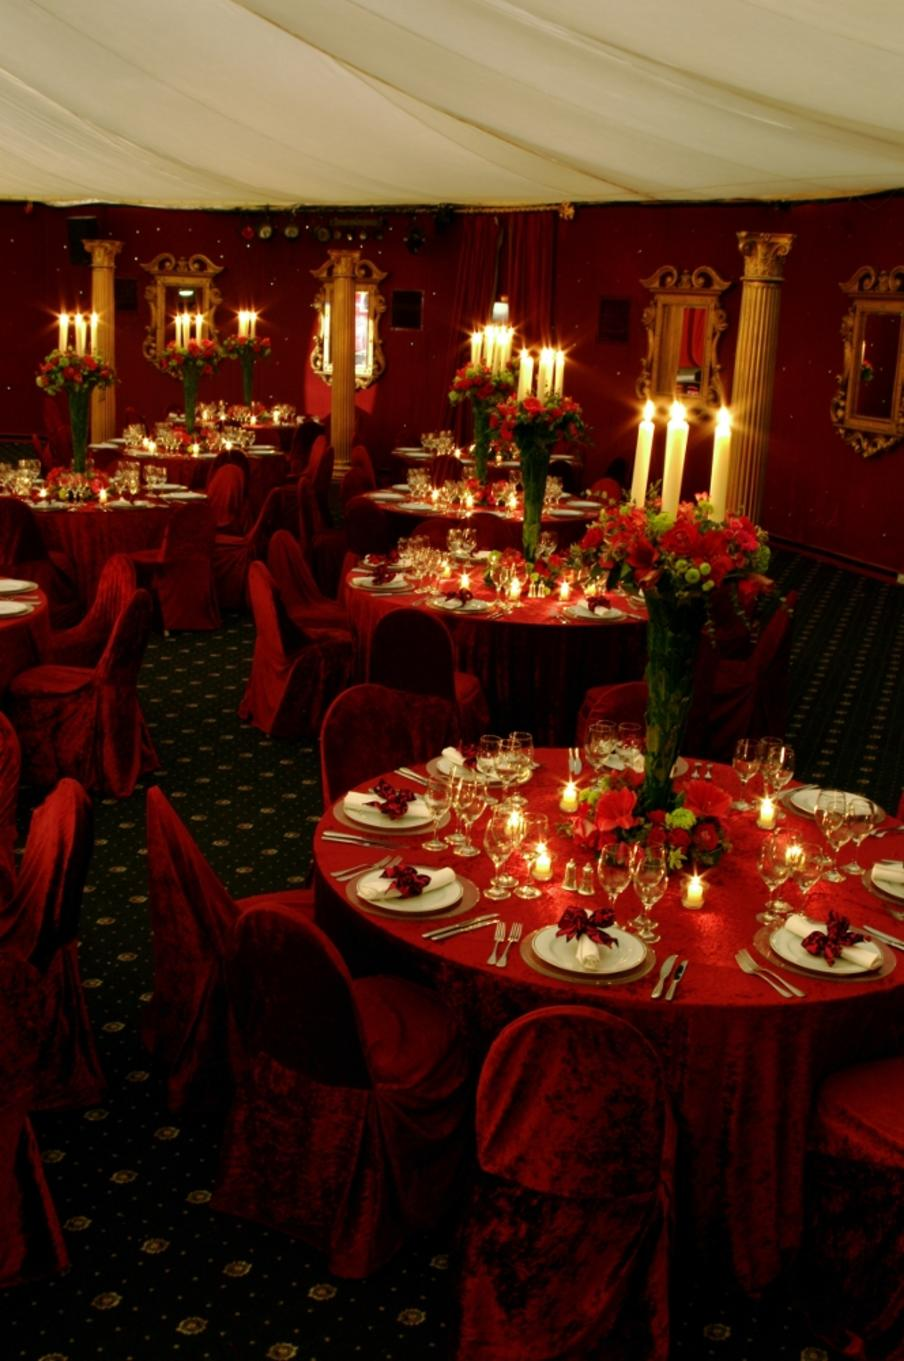 A red theme for dinner set on round tables with large centerpiece floral and candle decoration on each table